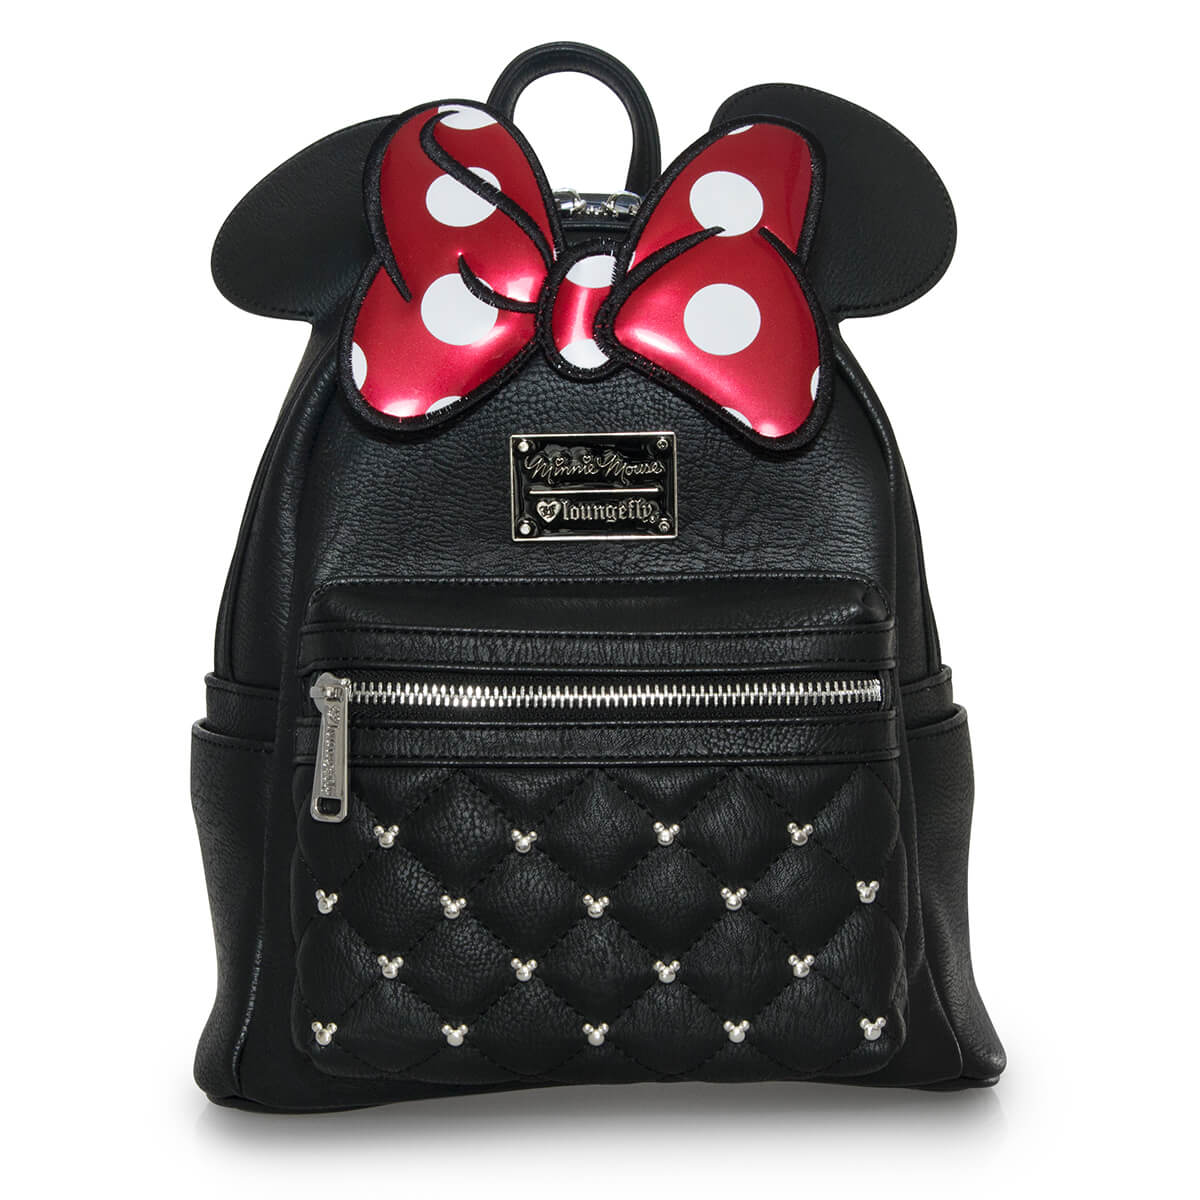 59a79fa26d6 Loungefly Disney Minnie Mouse Bow Mini Backpack Merchandise